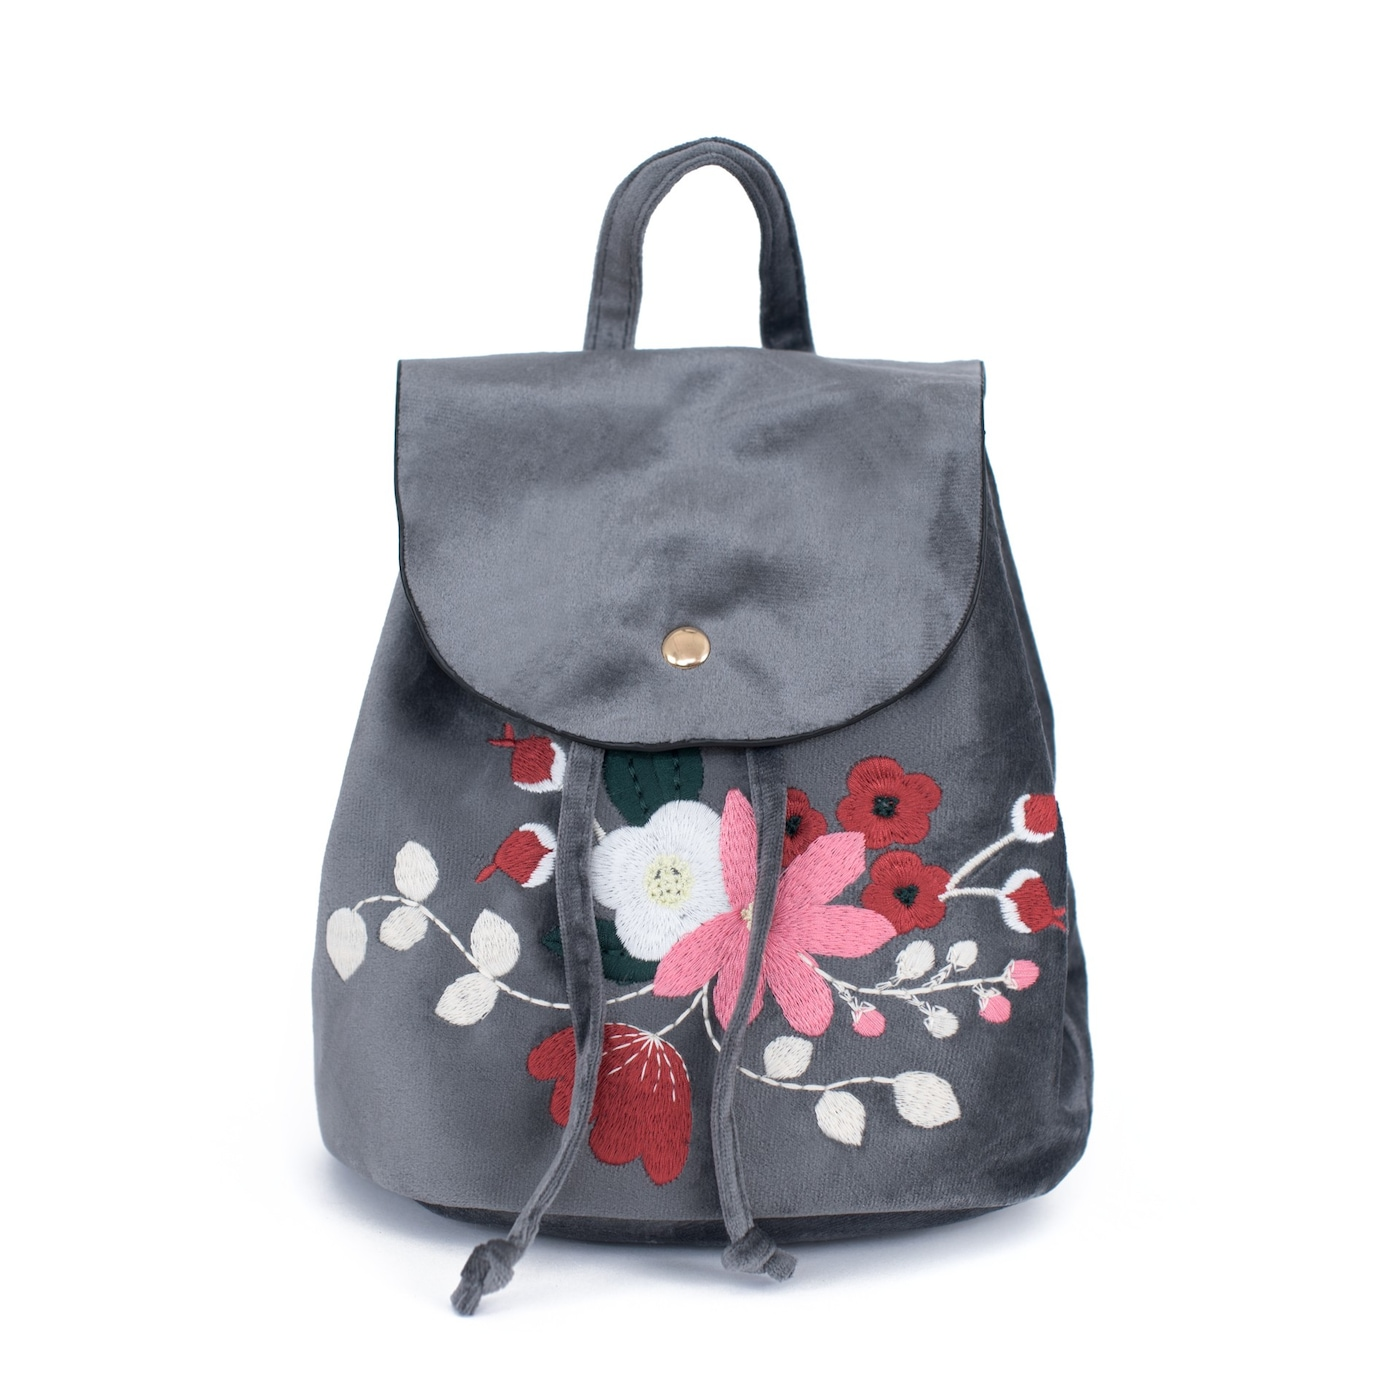 Art Of Polo Woman's Backpack tr19389